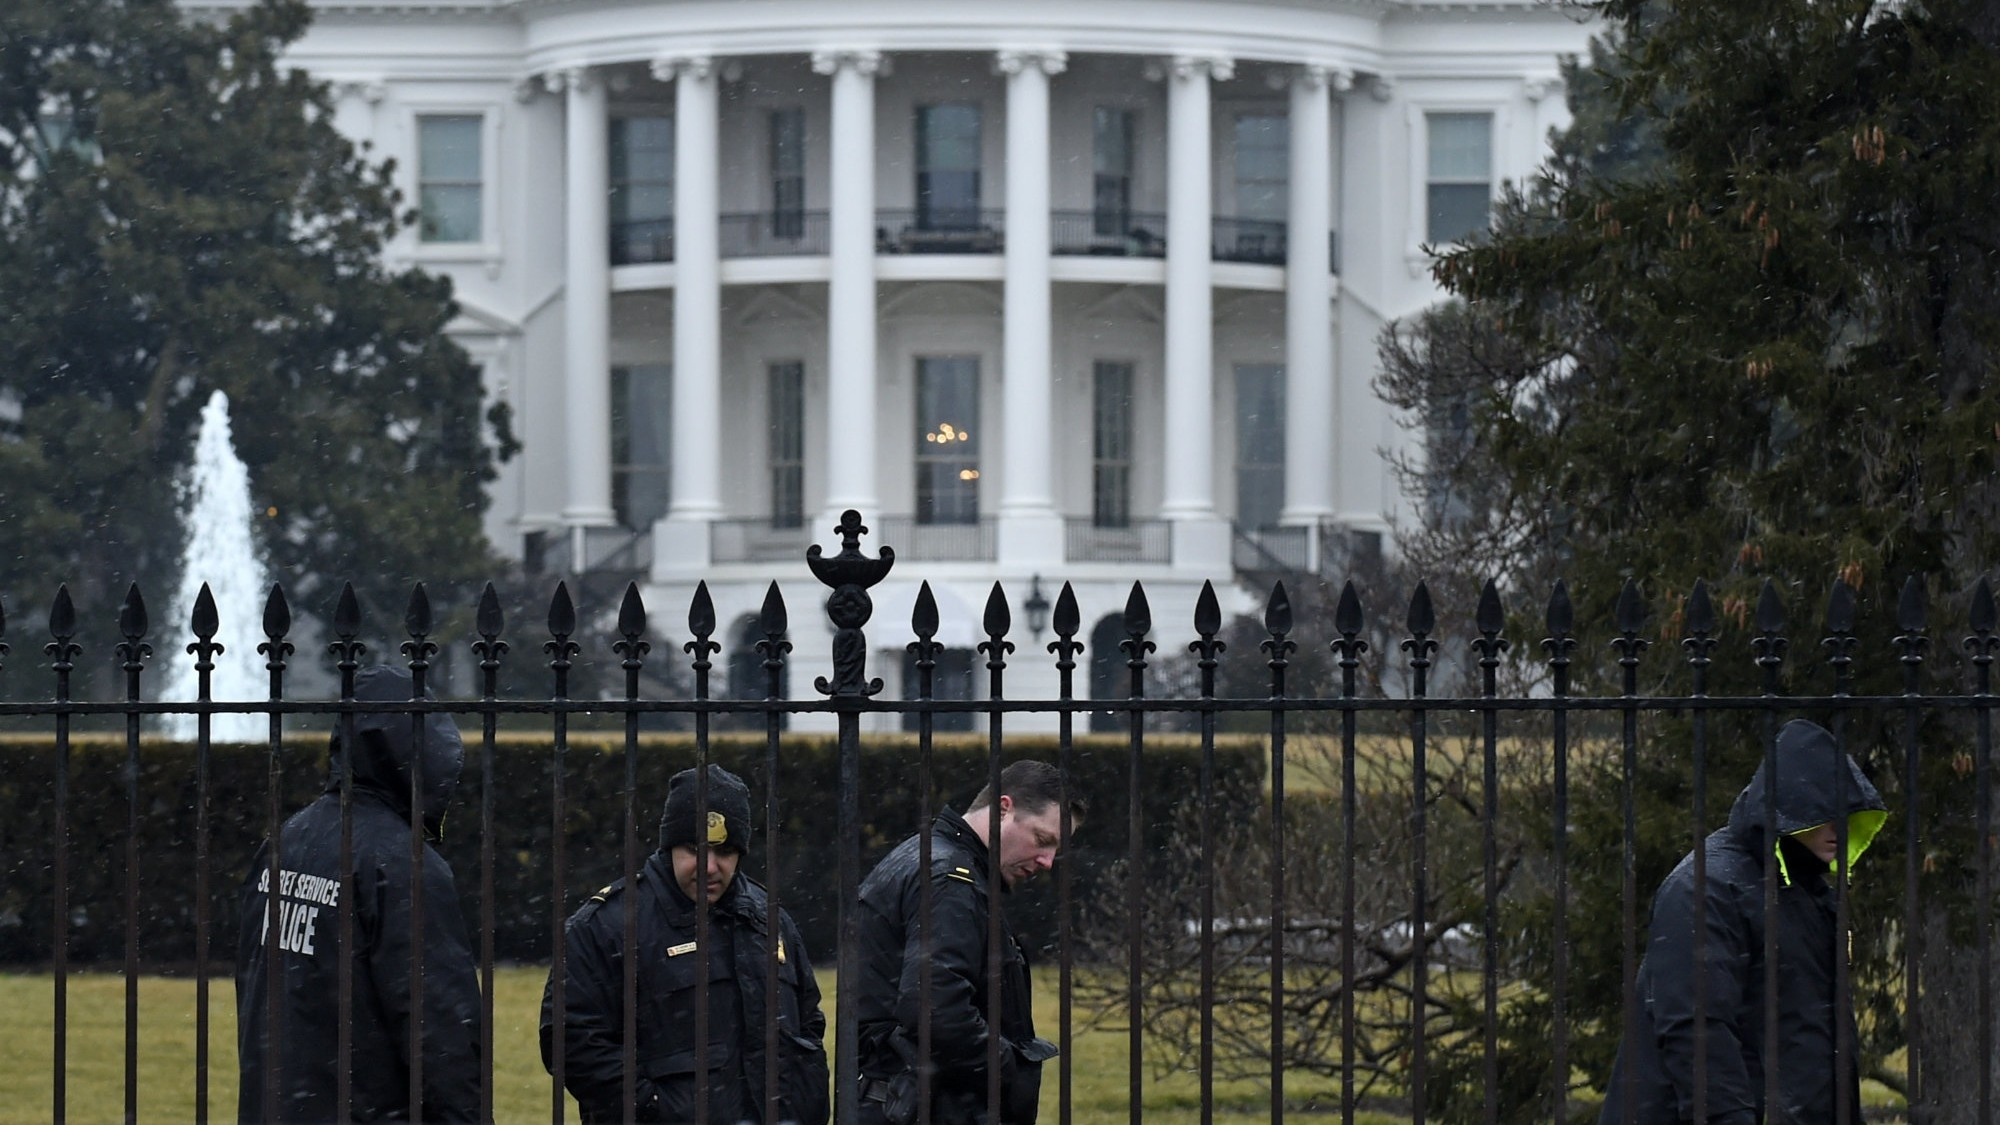 Armed Man Shot, Critically Injured By Secret Service Agent Near White House